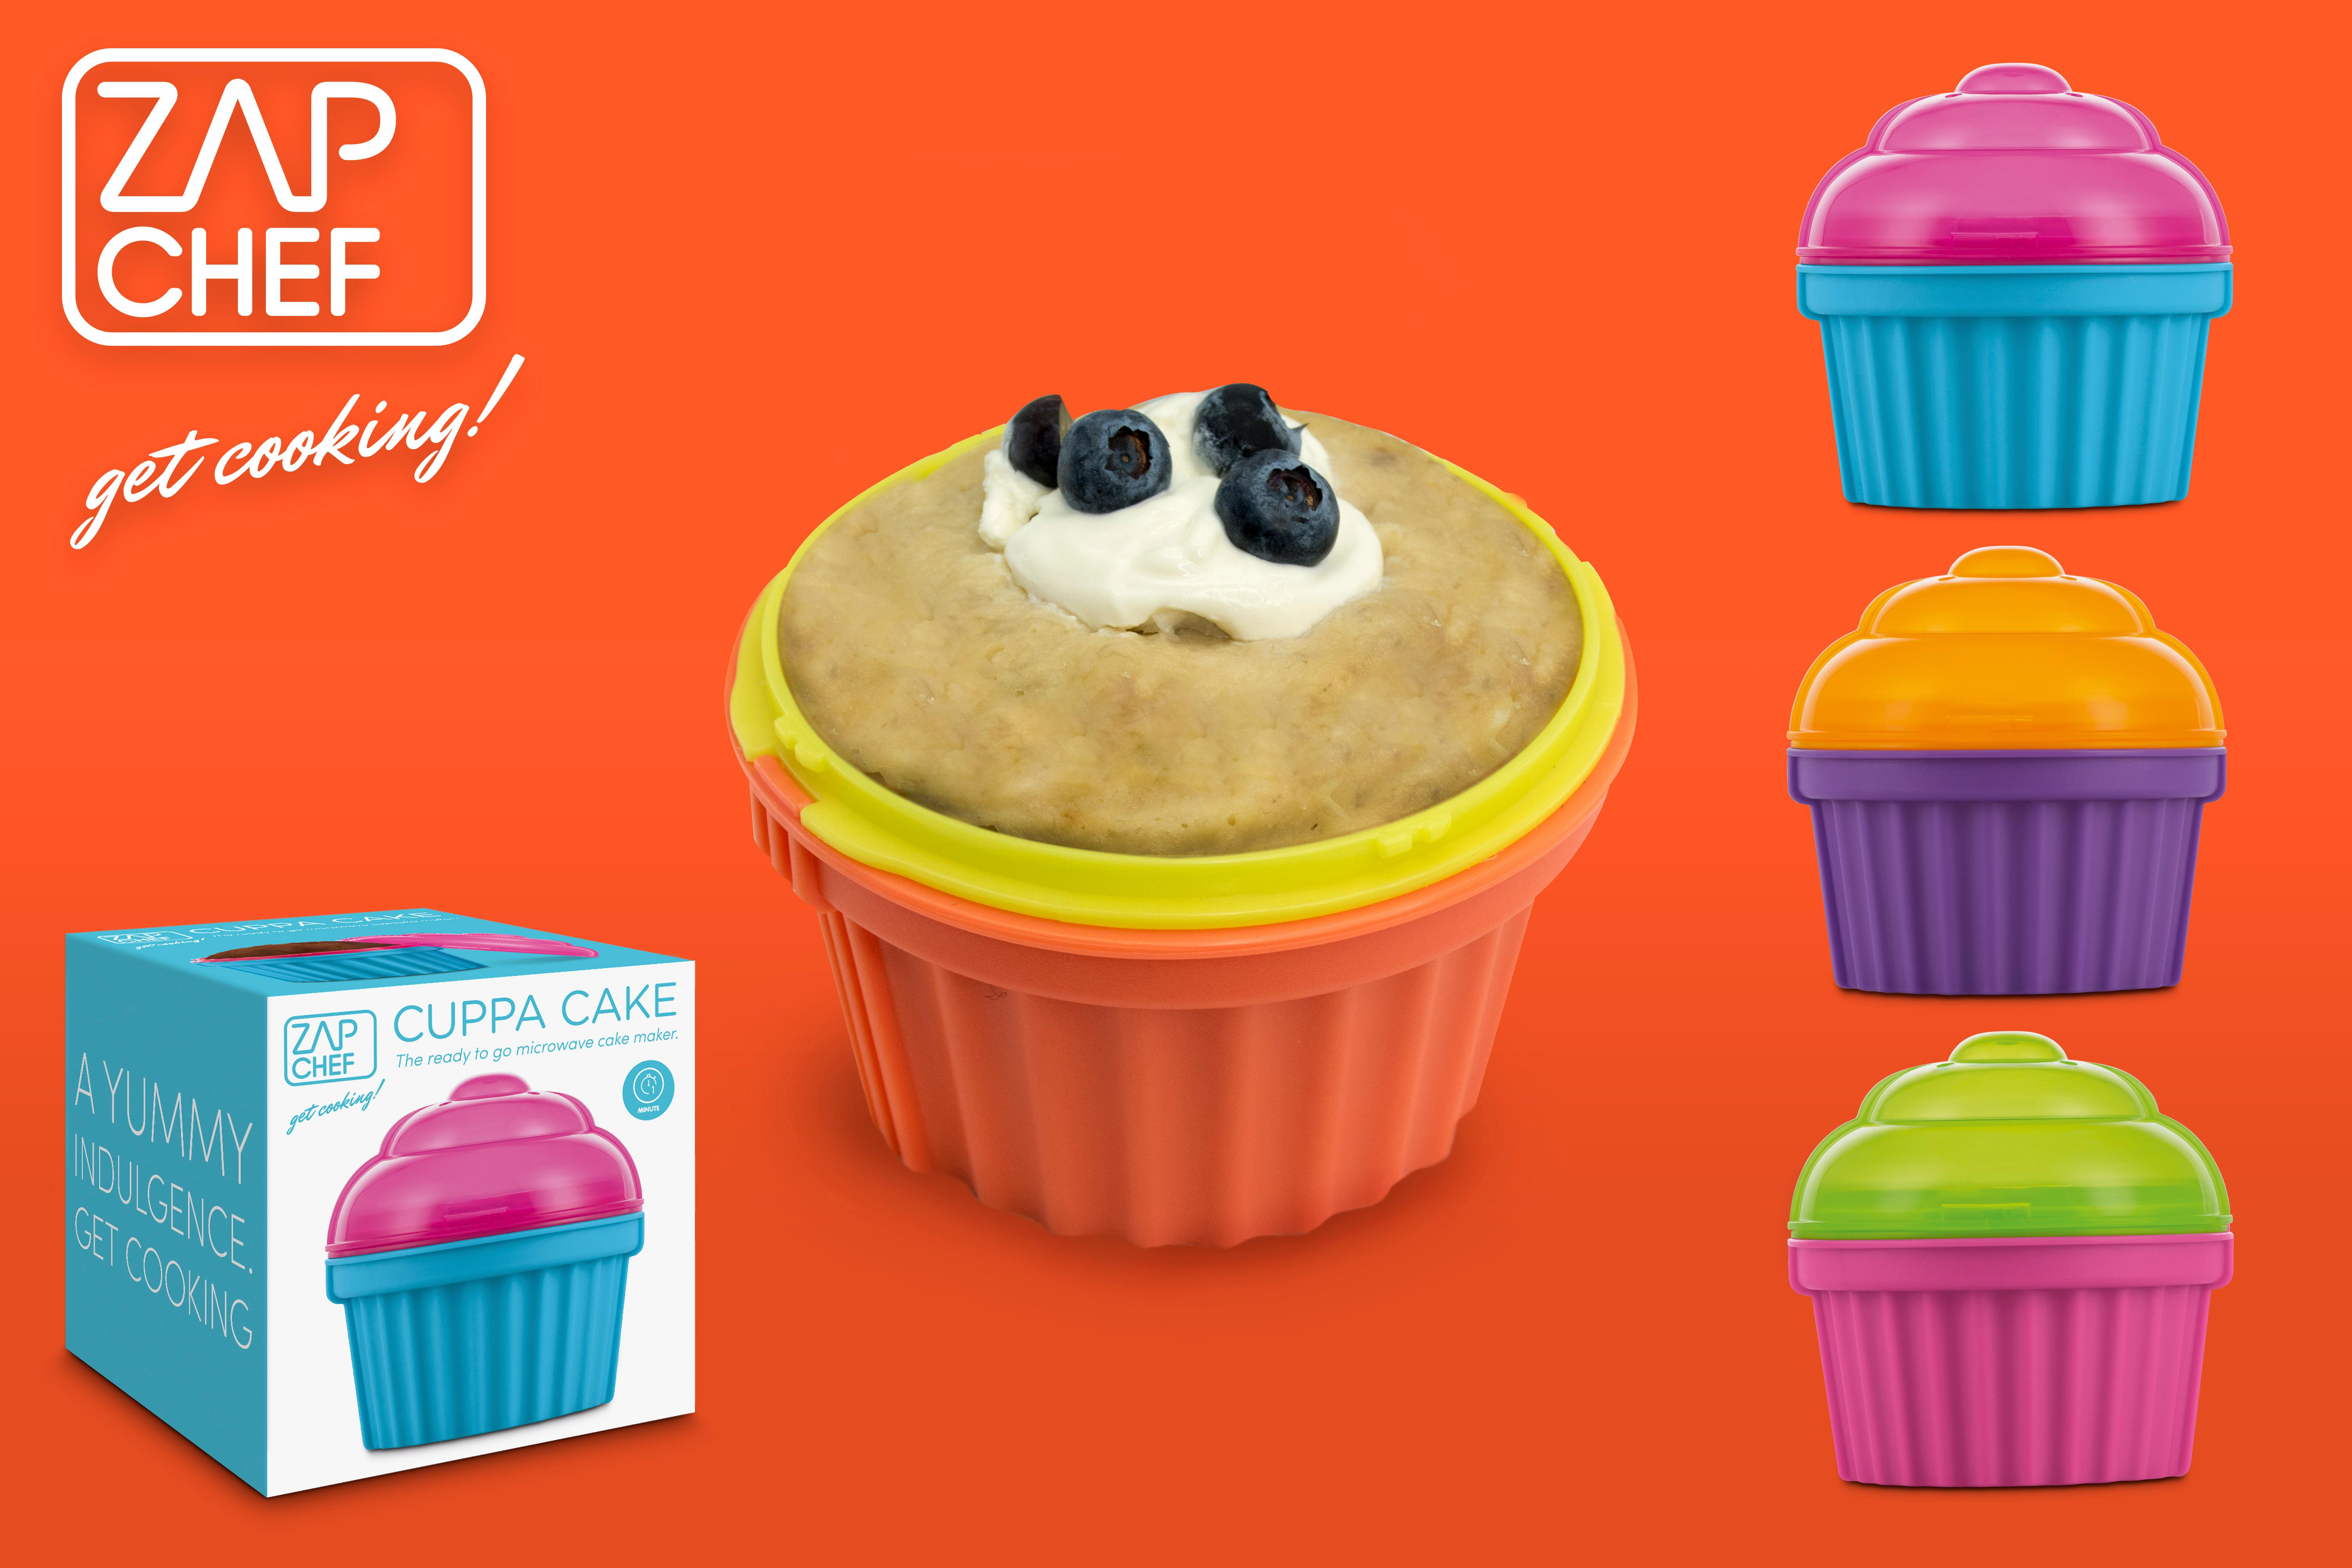 Amazon.com: Funtastic América, Inc Zap Chef Cuppa Pastel ...